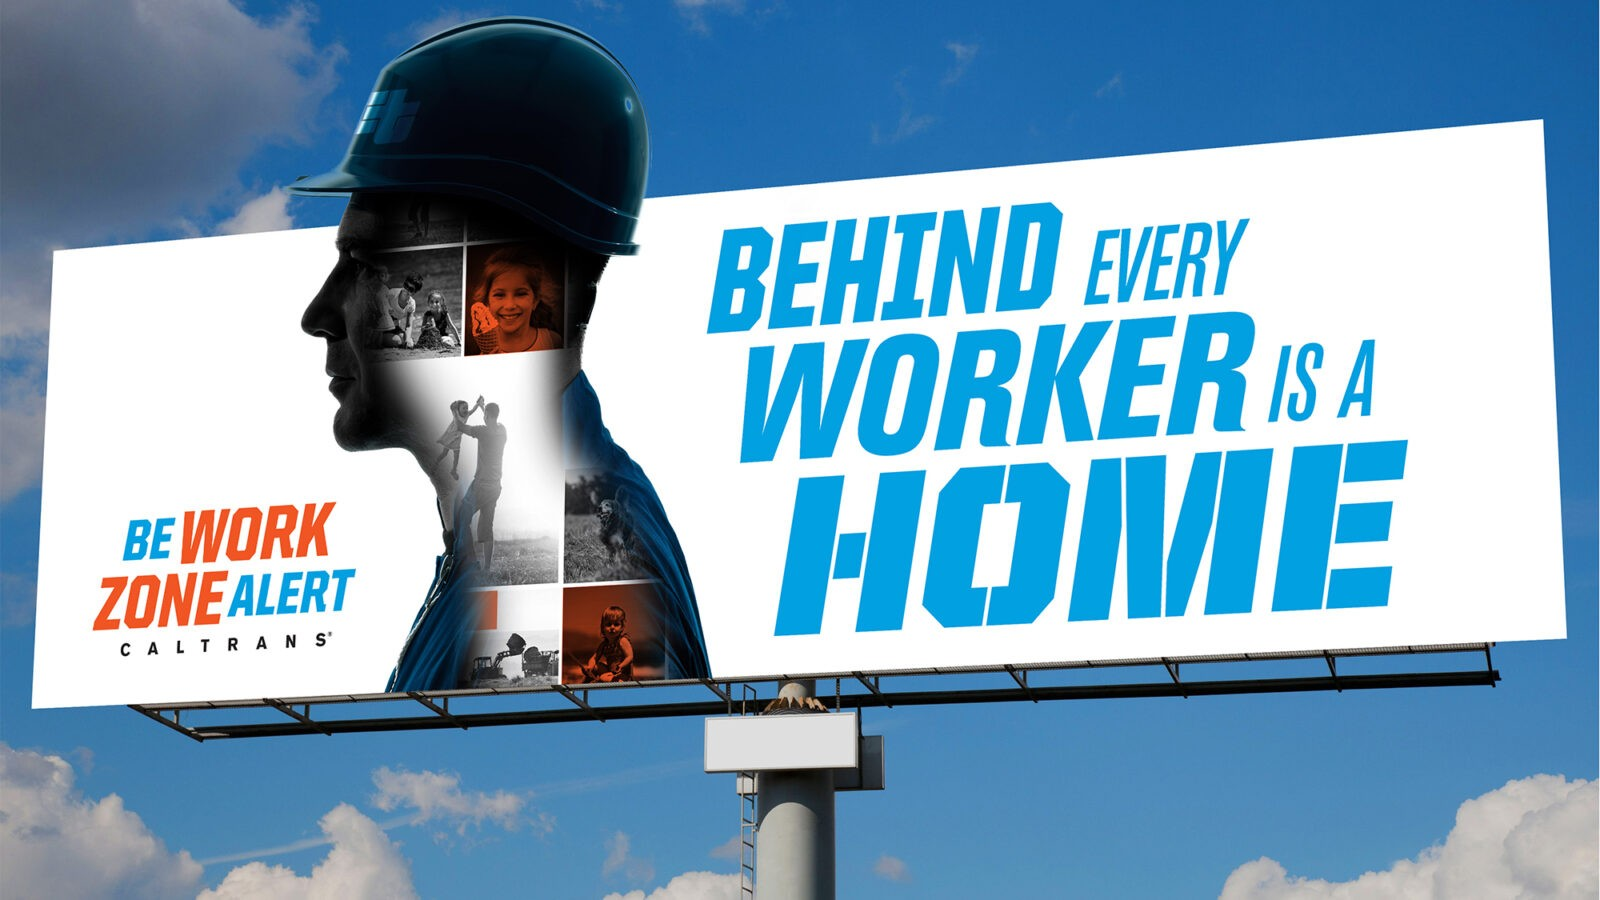 CalTrans Behind Every Worker Campaign Outdoor Board